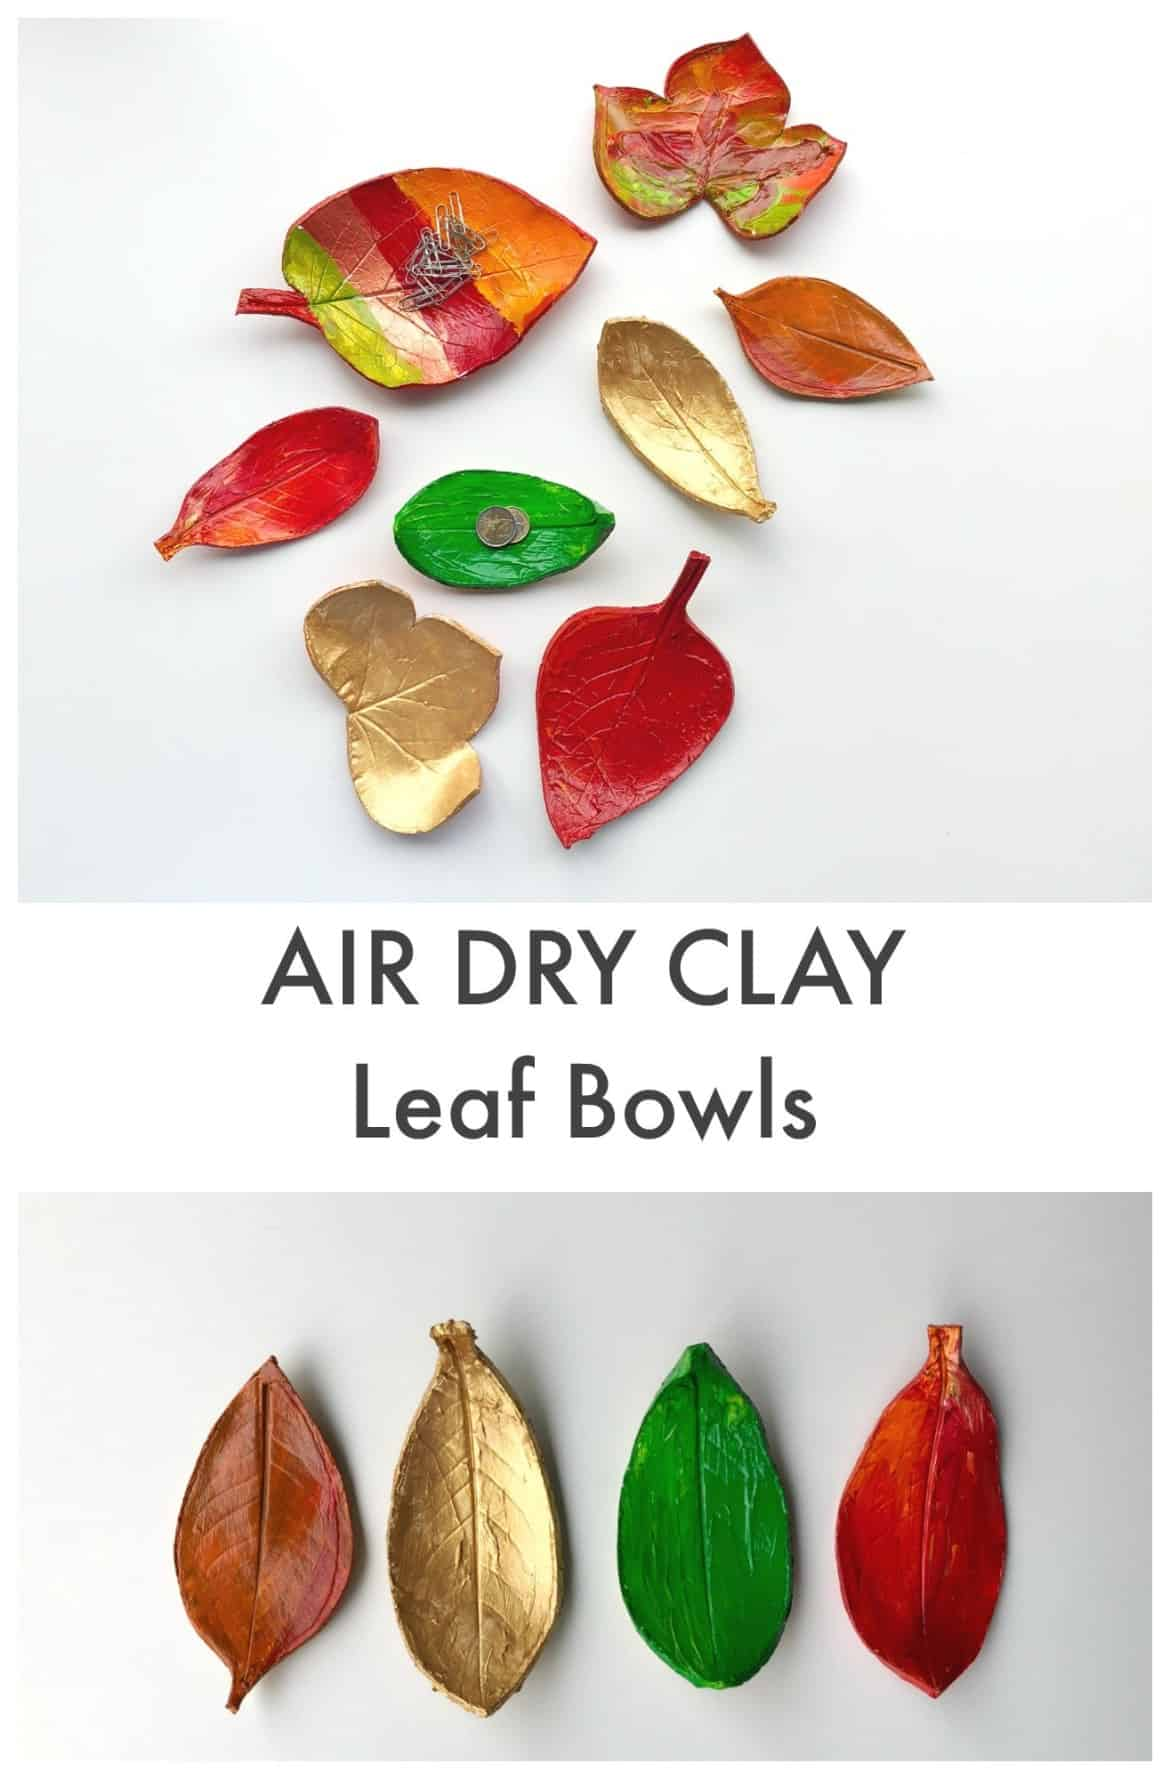 Air dry clay leaf bowls